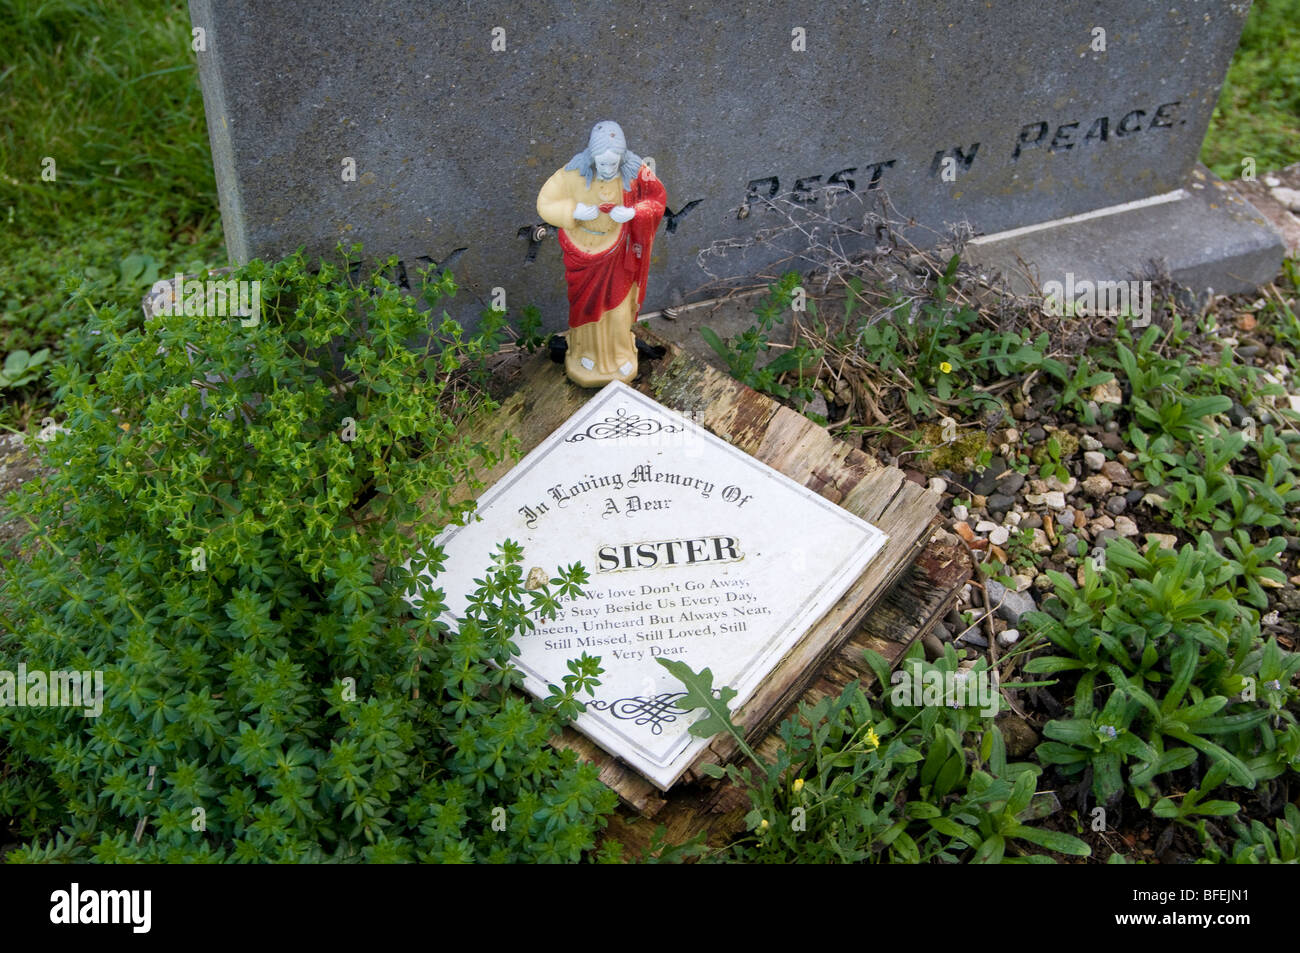 A plastic statue on an grave in an Irish cemetery - Stock Image